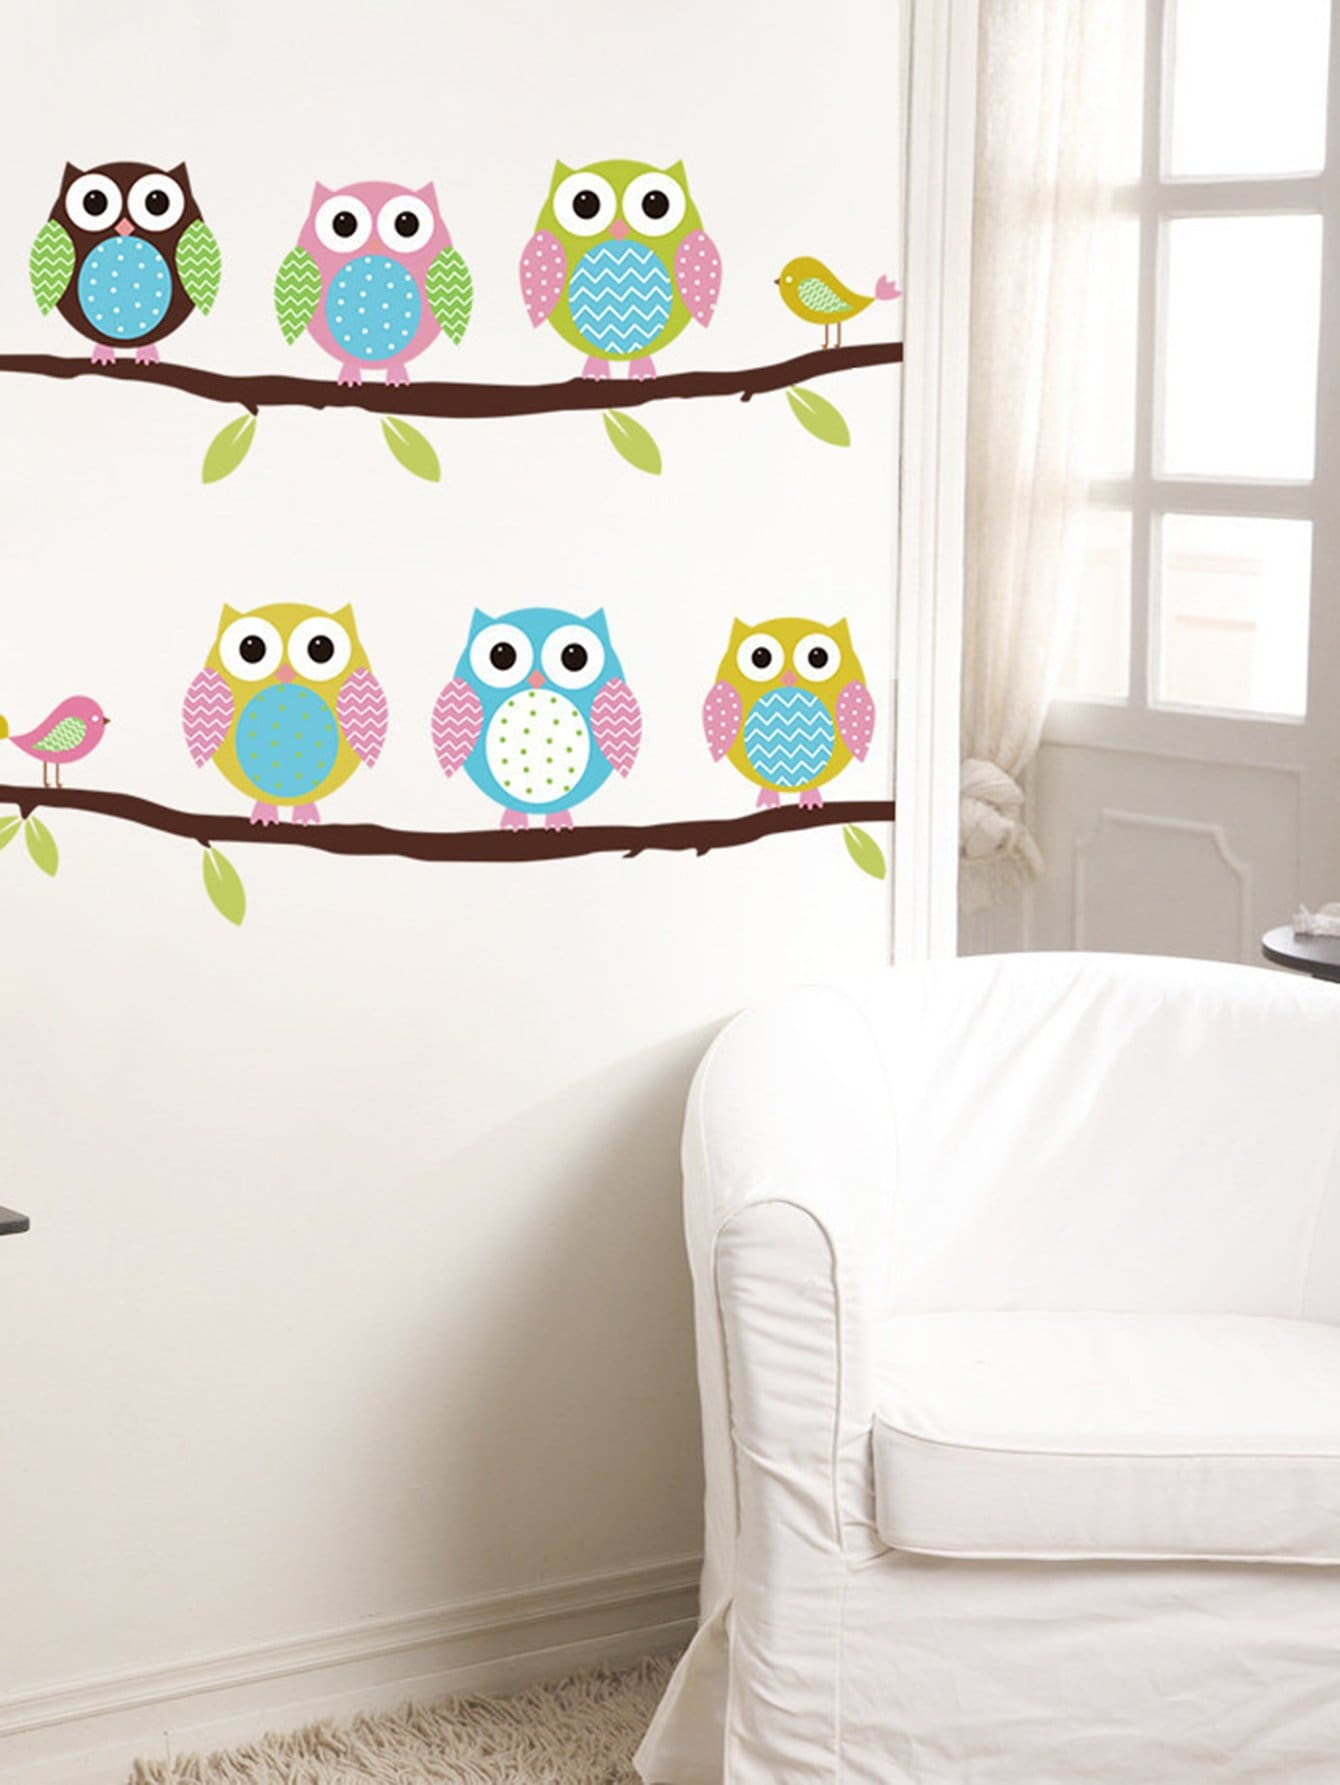 Adhesivo Decorativo Para Paredes Adhesivo Decorativo De Pared Con Búhos Spanish Shein